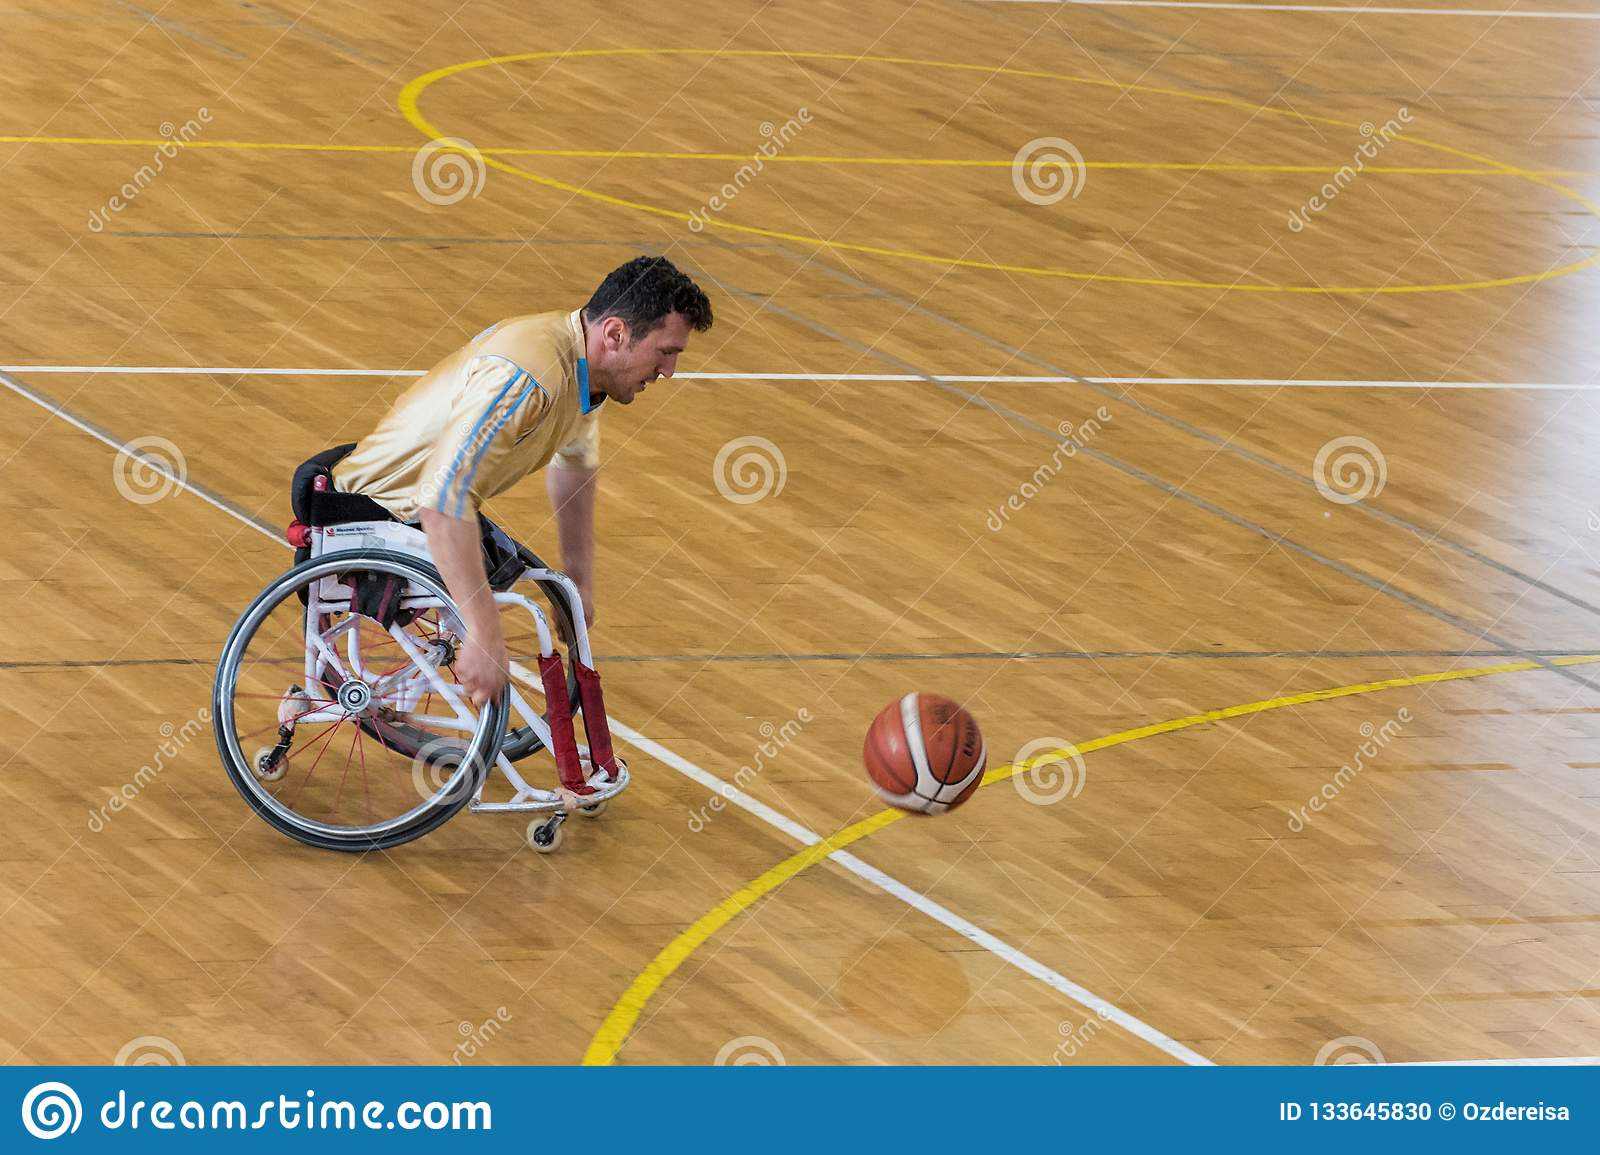 Disabled basketball players have friendly basketball match